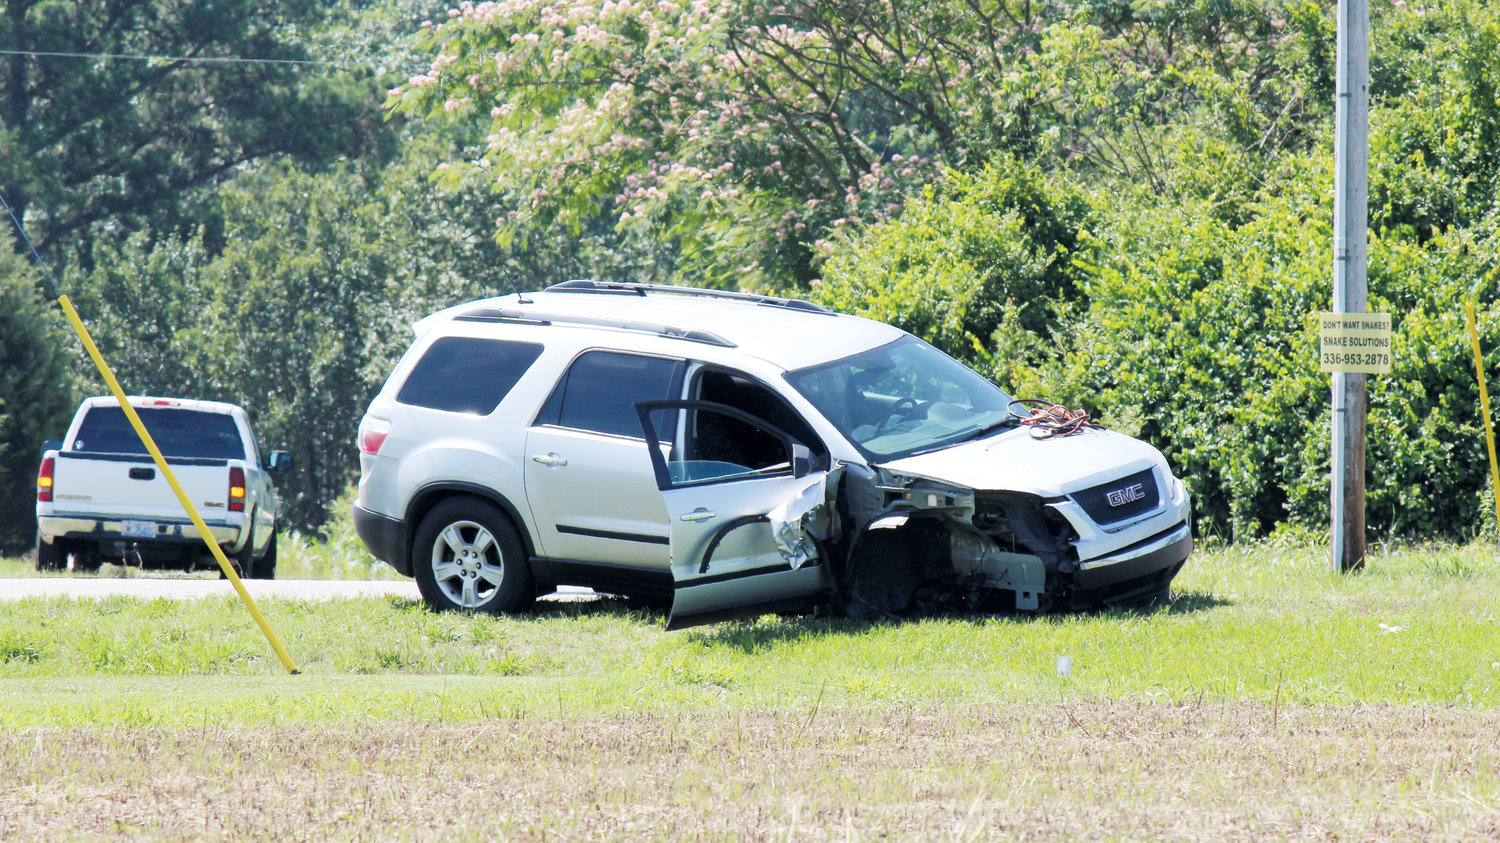 Latest fatal wreck marks 7 roadway deaths in 48 days | The